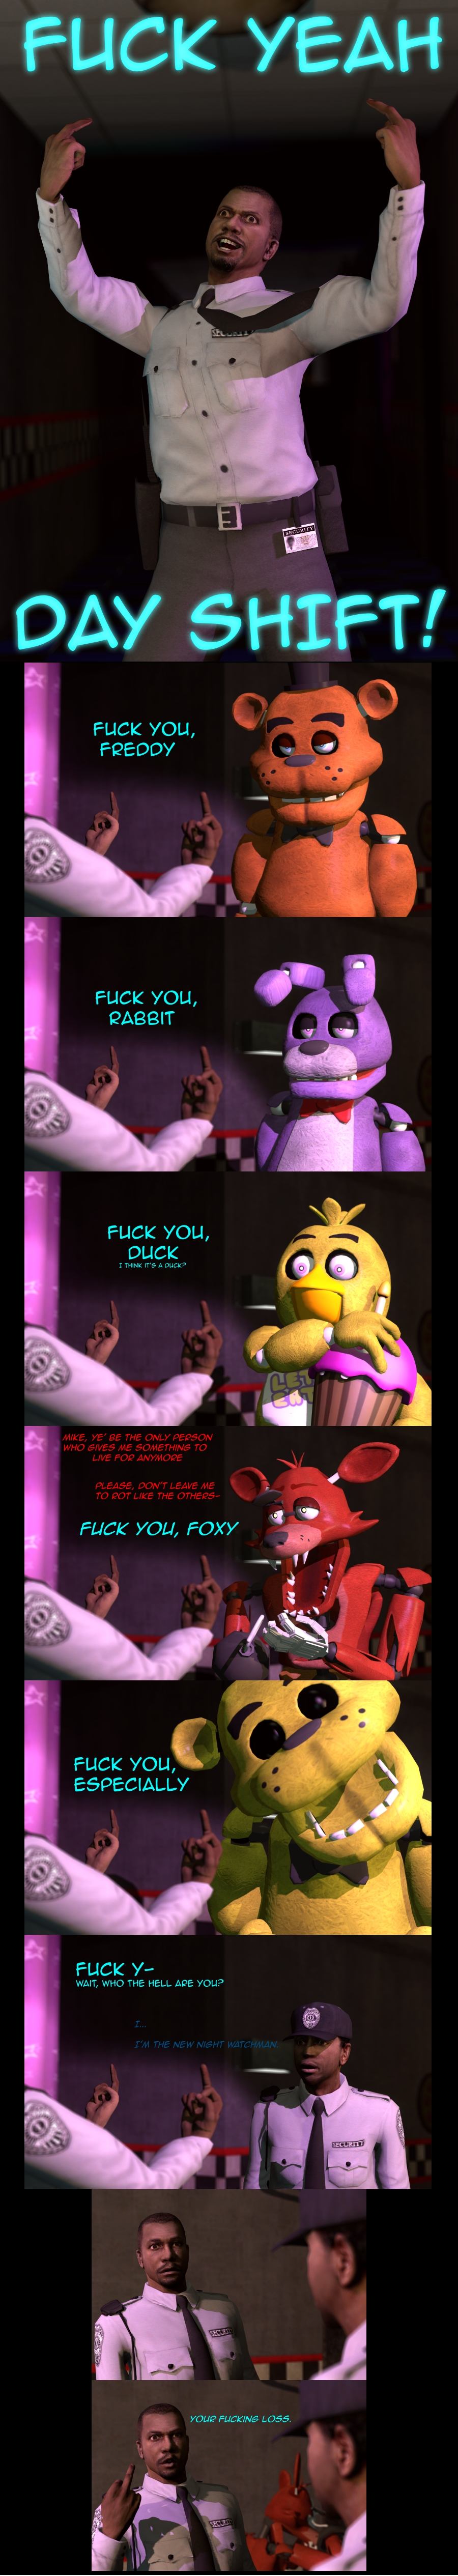 Fuck Yeah | Five Nights at Freddy's | Know Your Meme